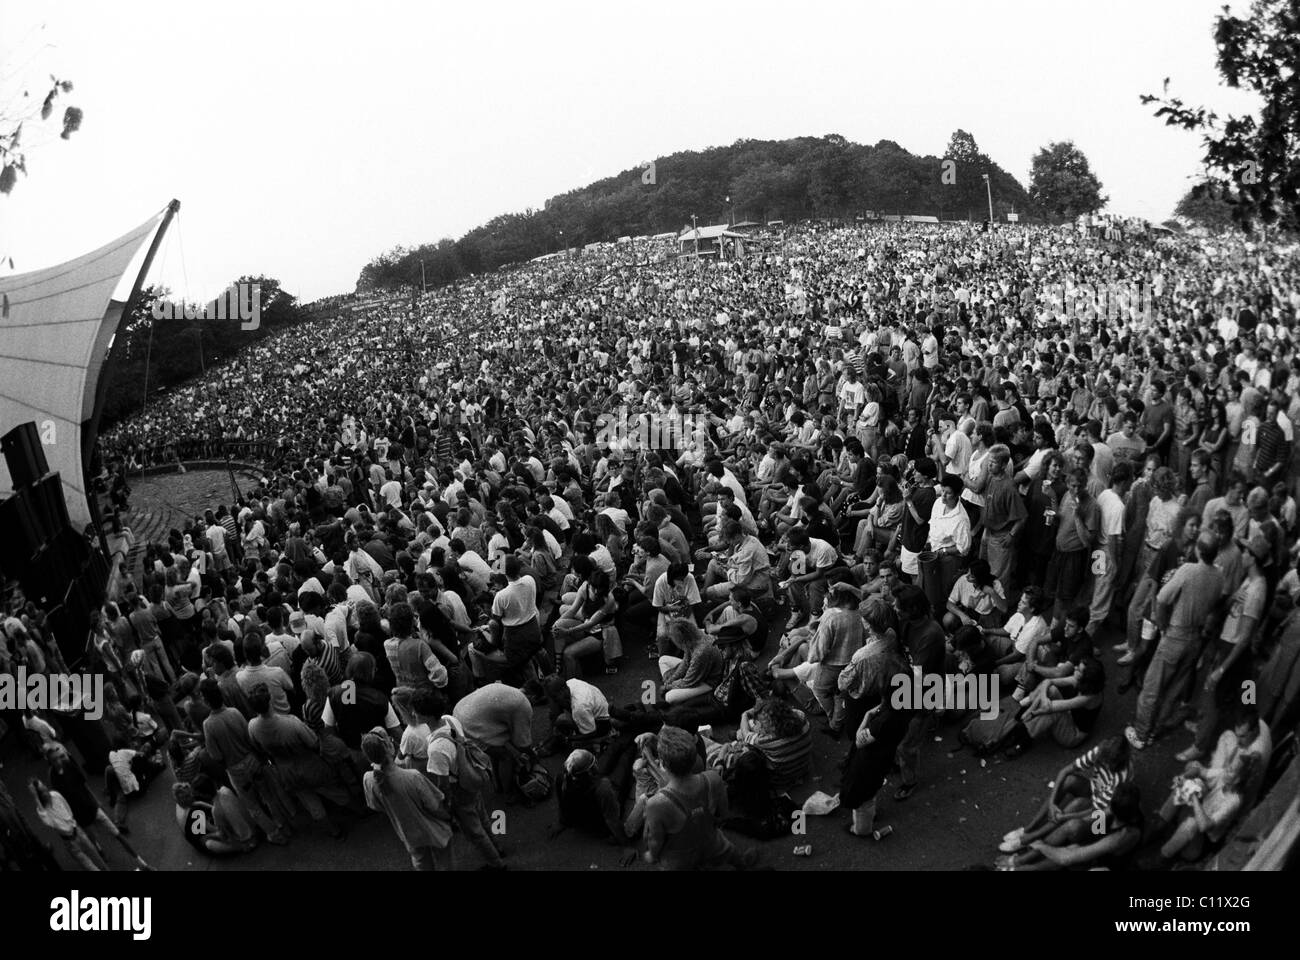 Concert of the rock group 'Simple Minds' on 01.09.1991 at the Loreley open-air stage, St. Goarshausen, Rhineland - Stock Image